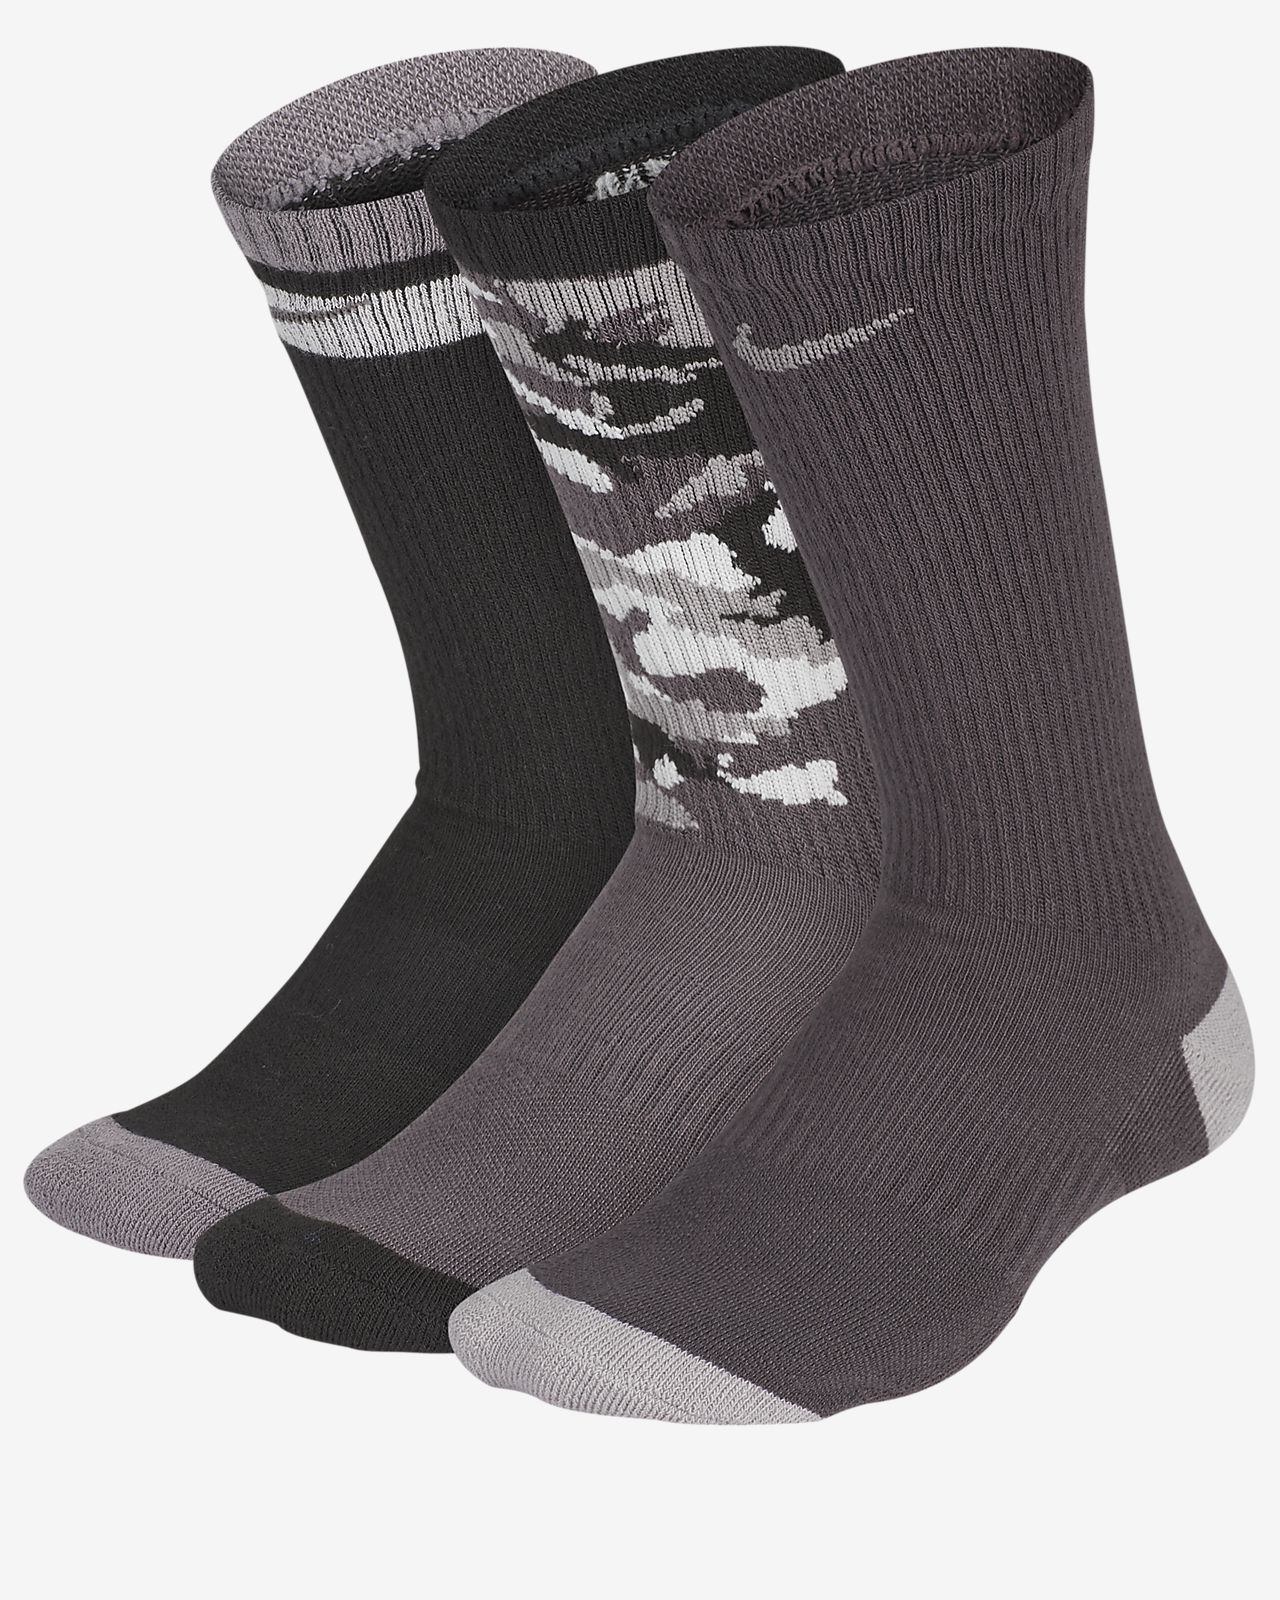 Nike Everyday Cushioned Kids' Crew Socks (3 Pairs)